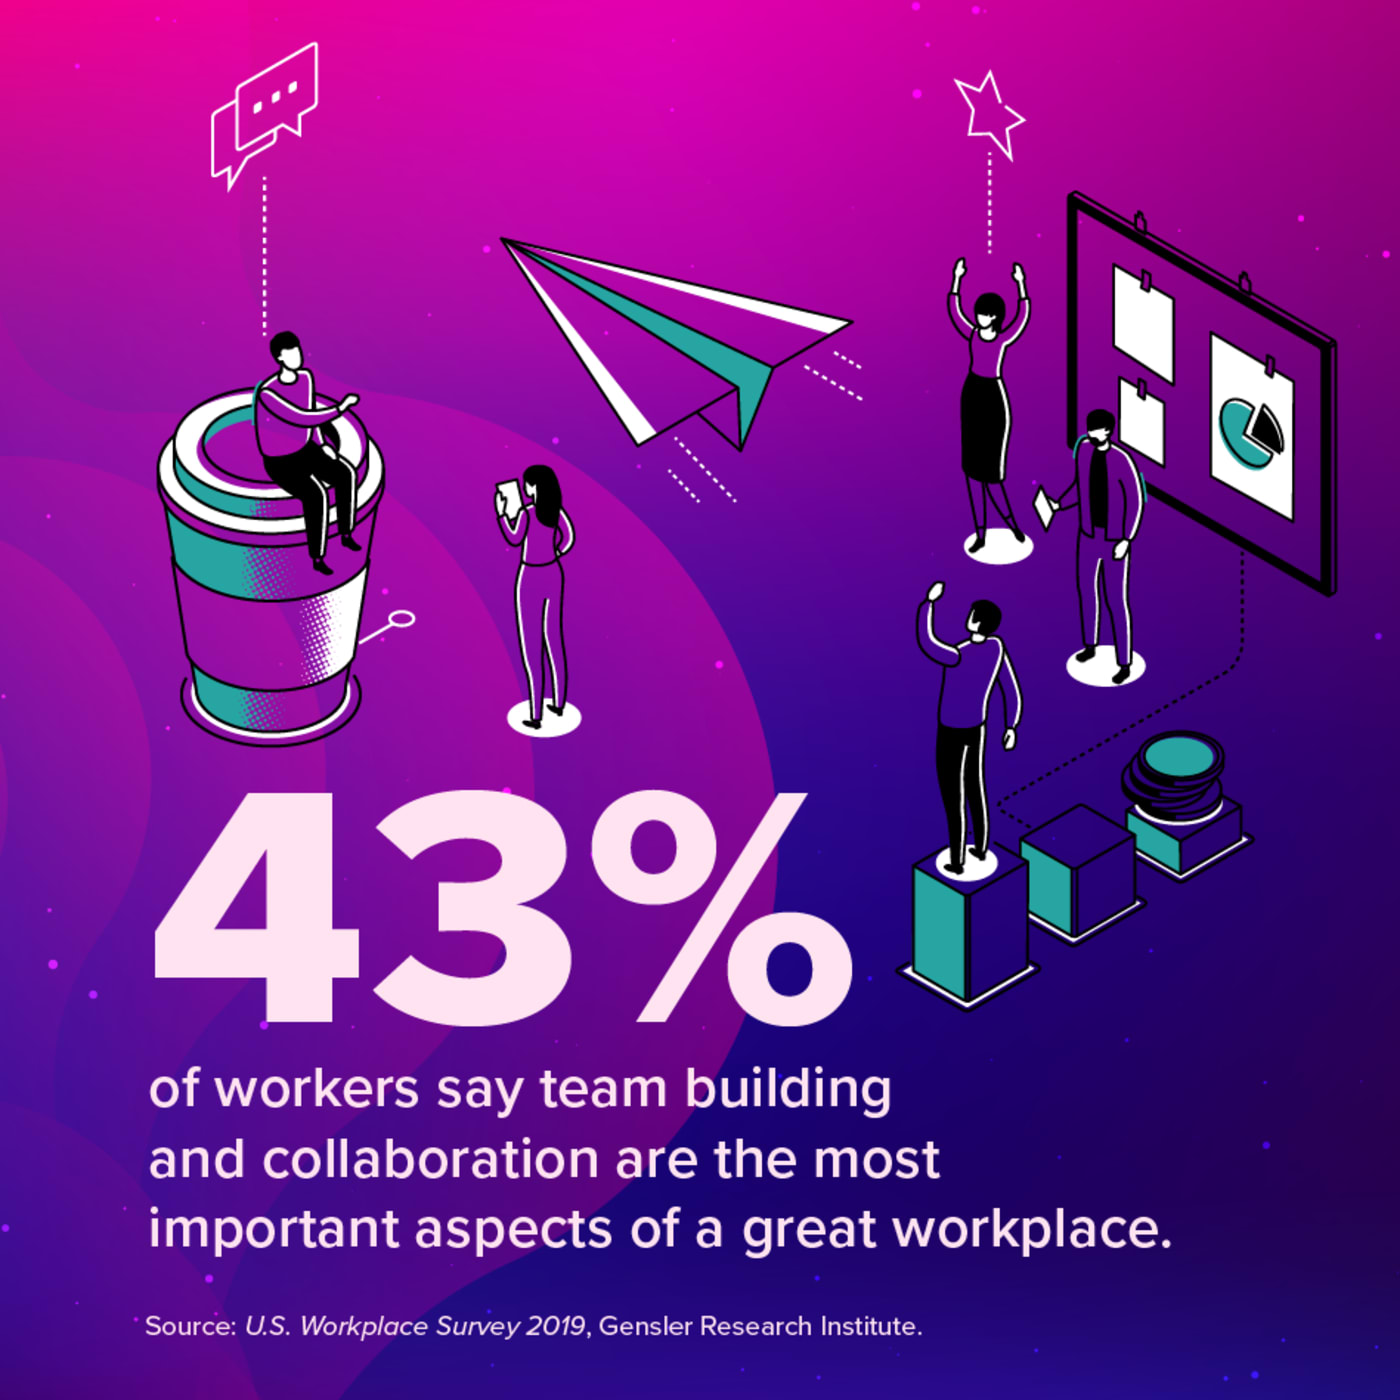 43% of workers say team building and collabration is most important